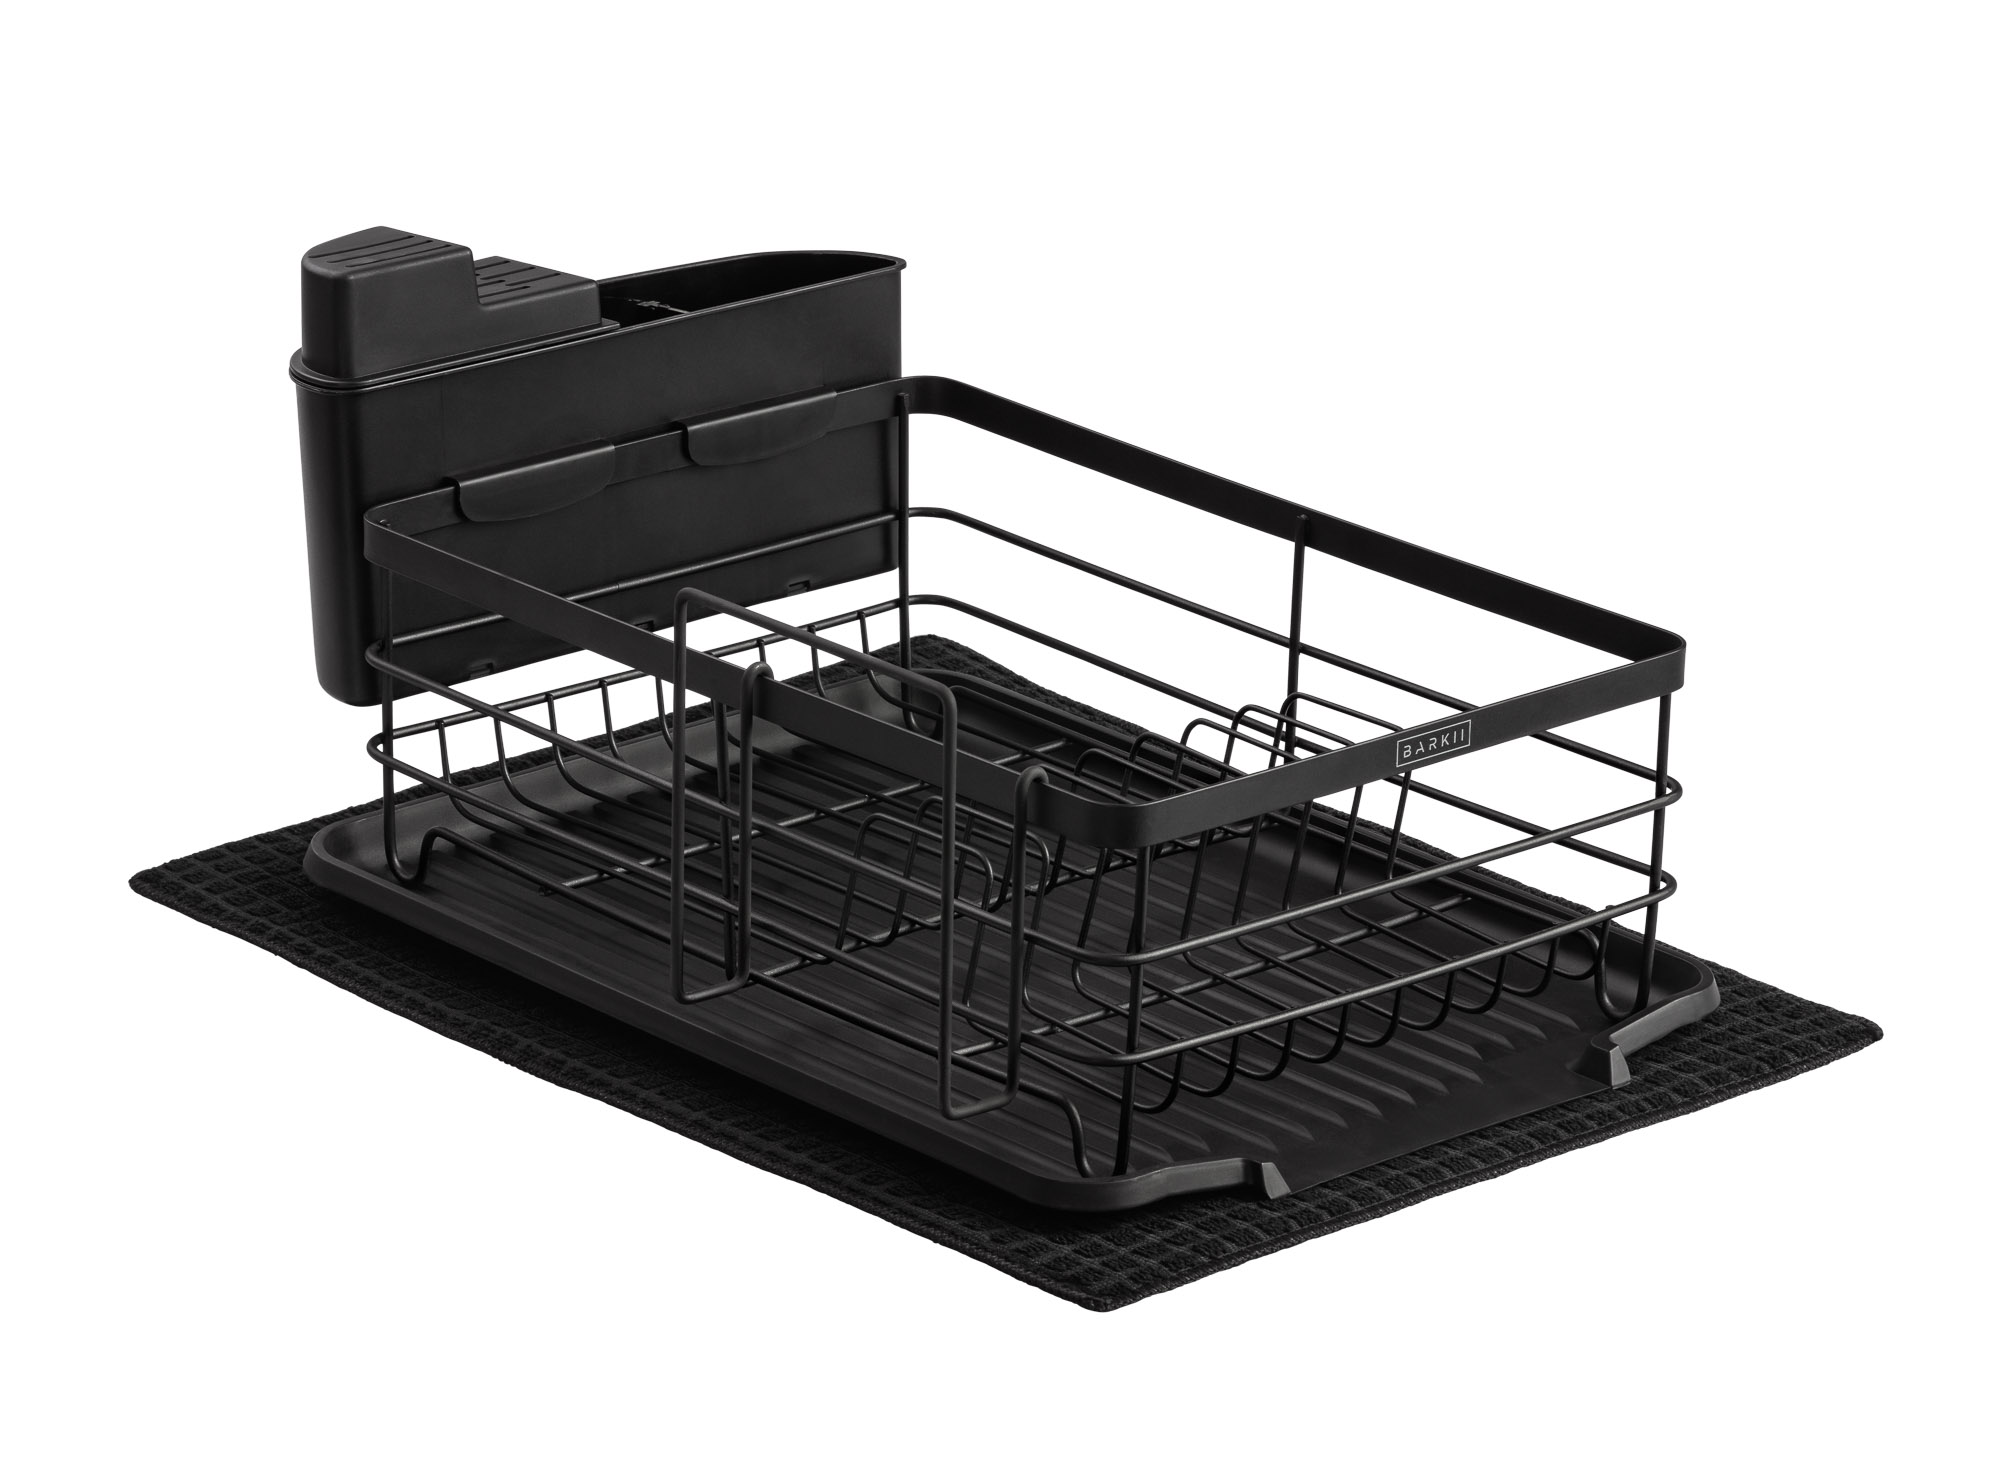 Dish Rack All parts - Less small cutlery container - Product photo for Amazon